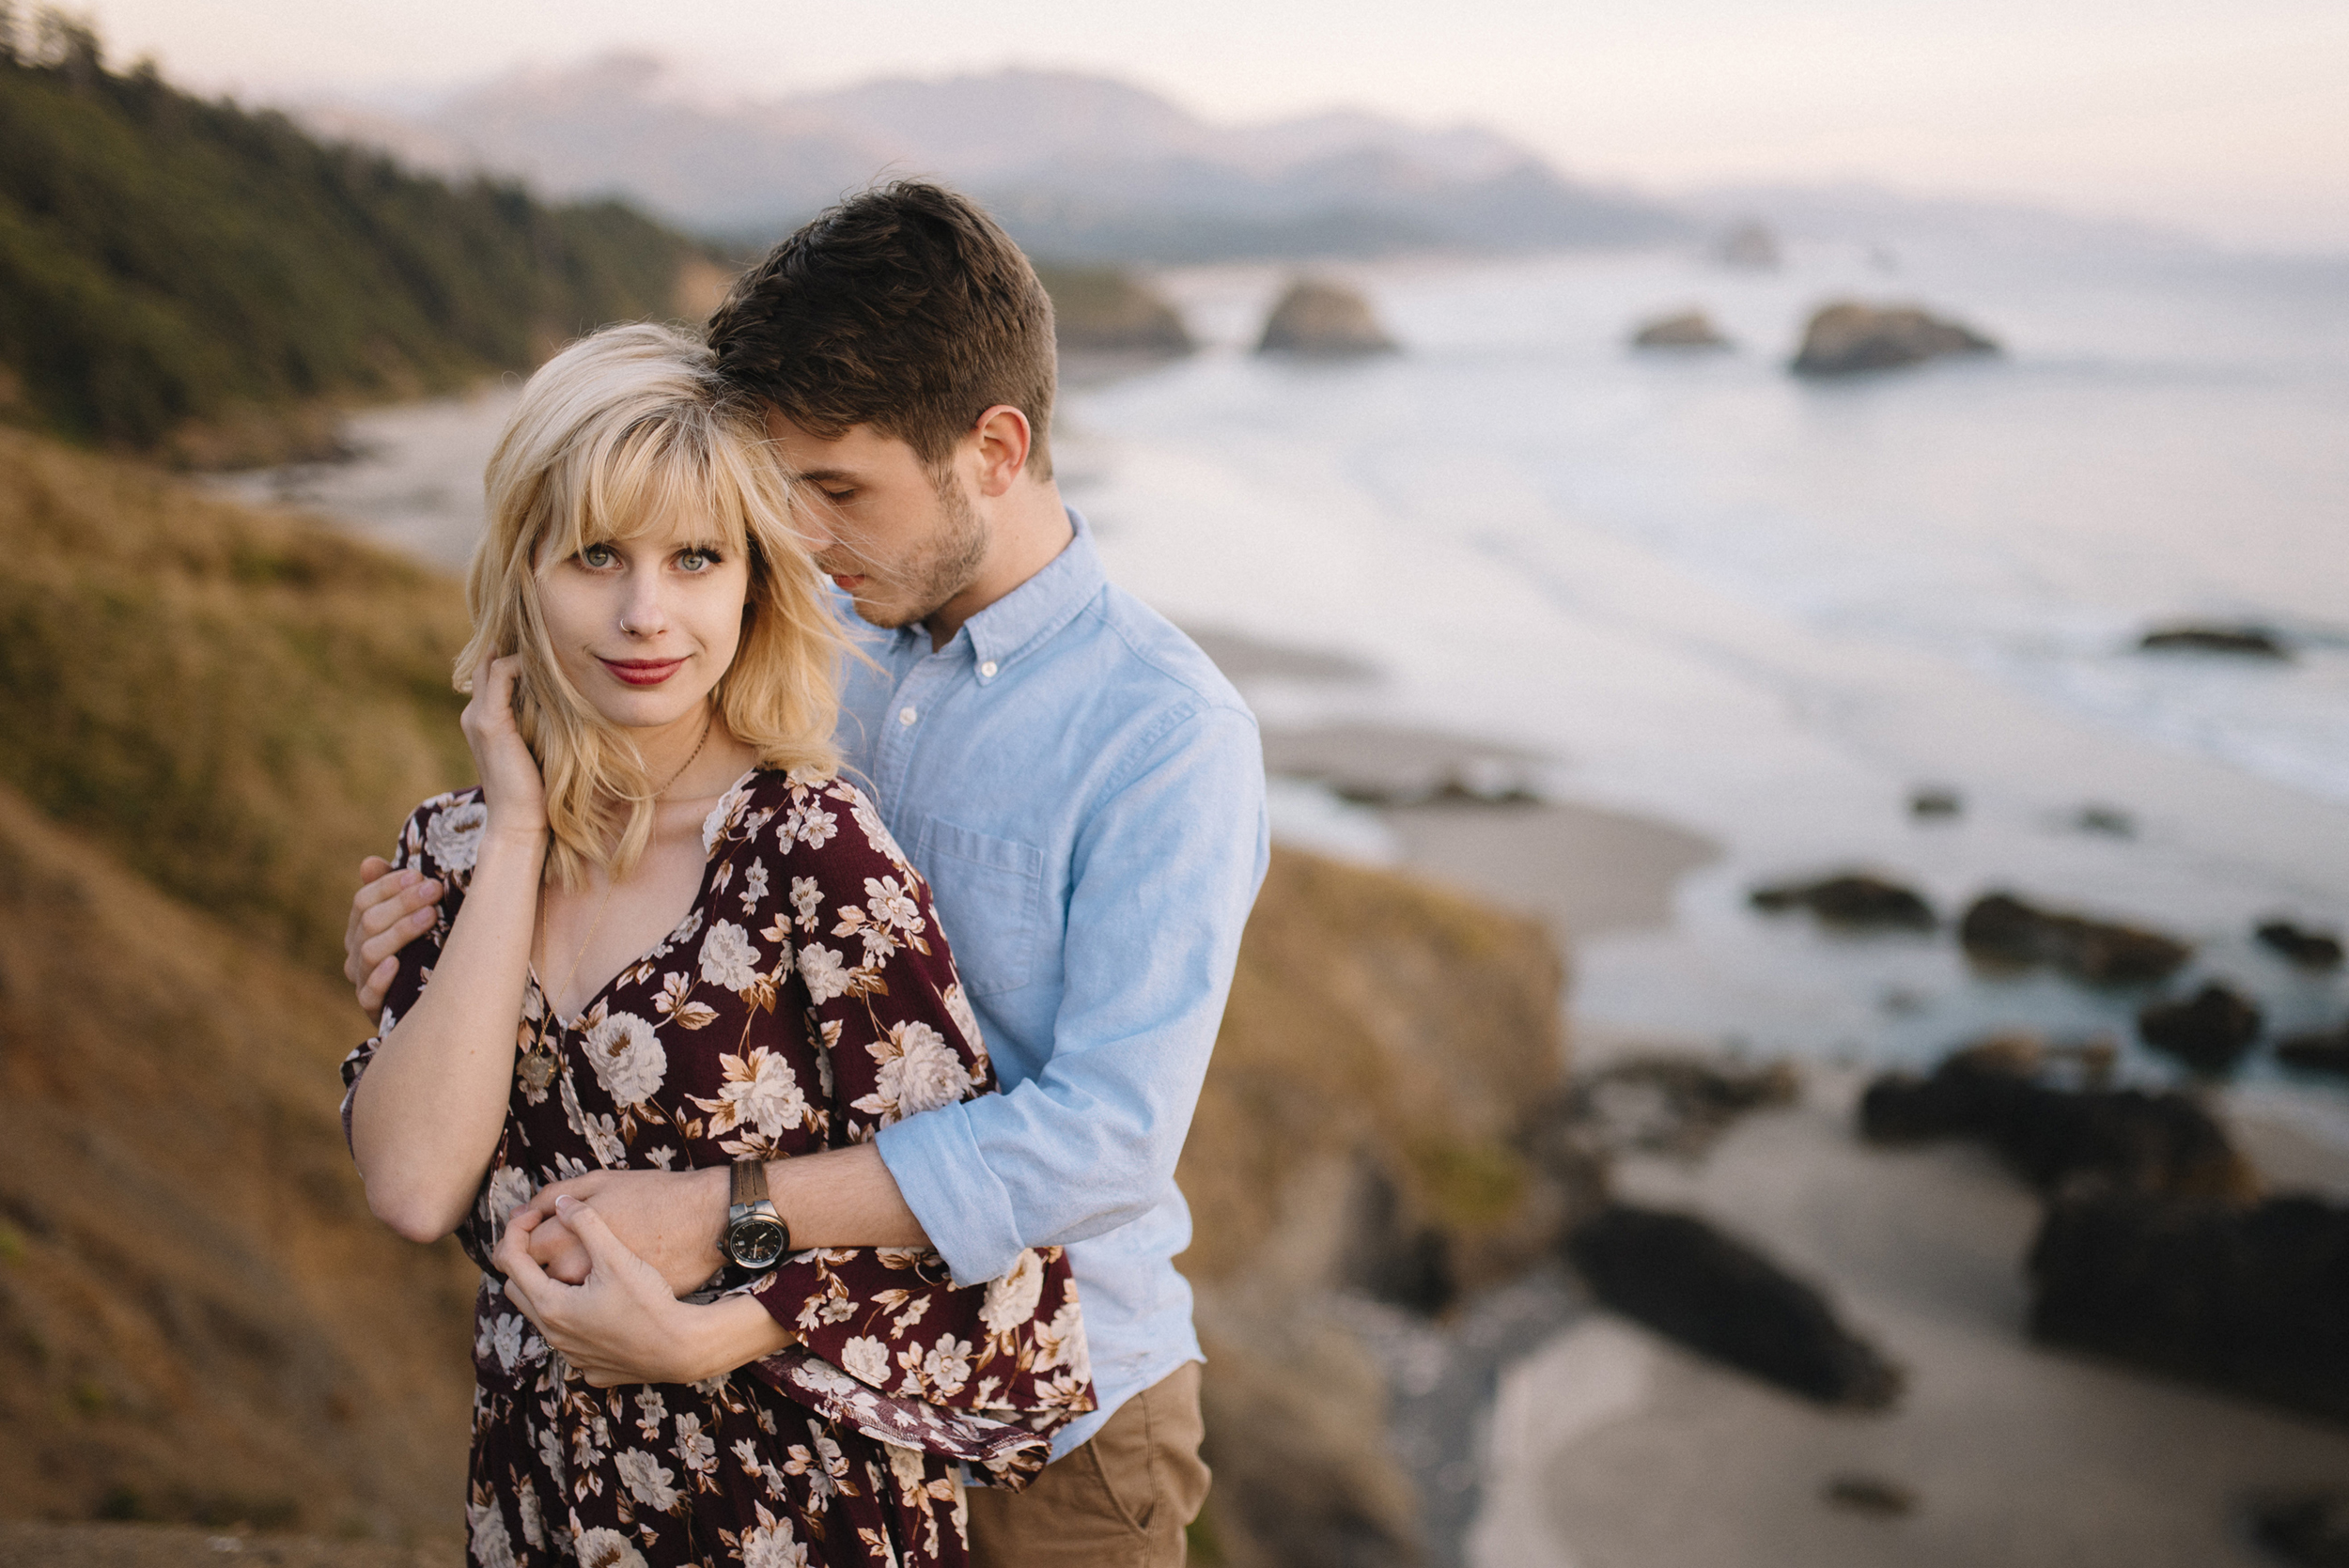 Cannon Beach Oregon Coast Adventure Couples Photographer 134.jpg